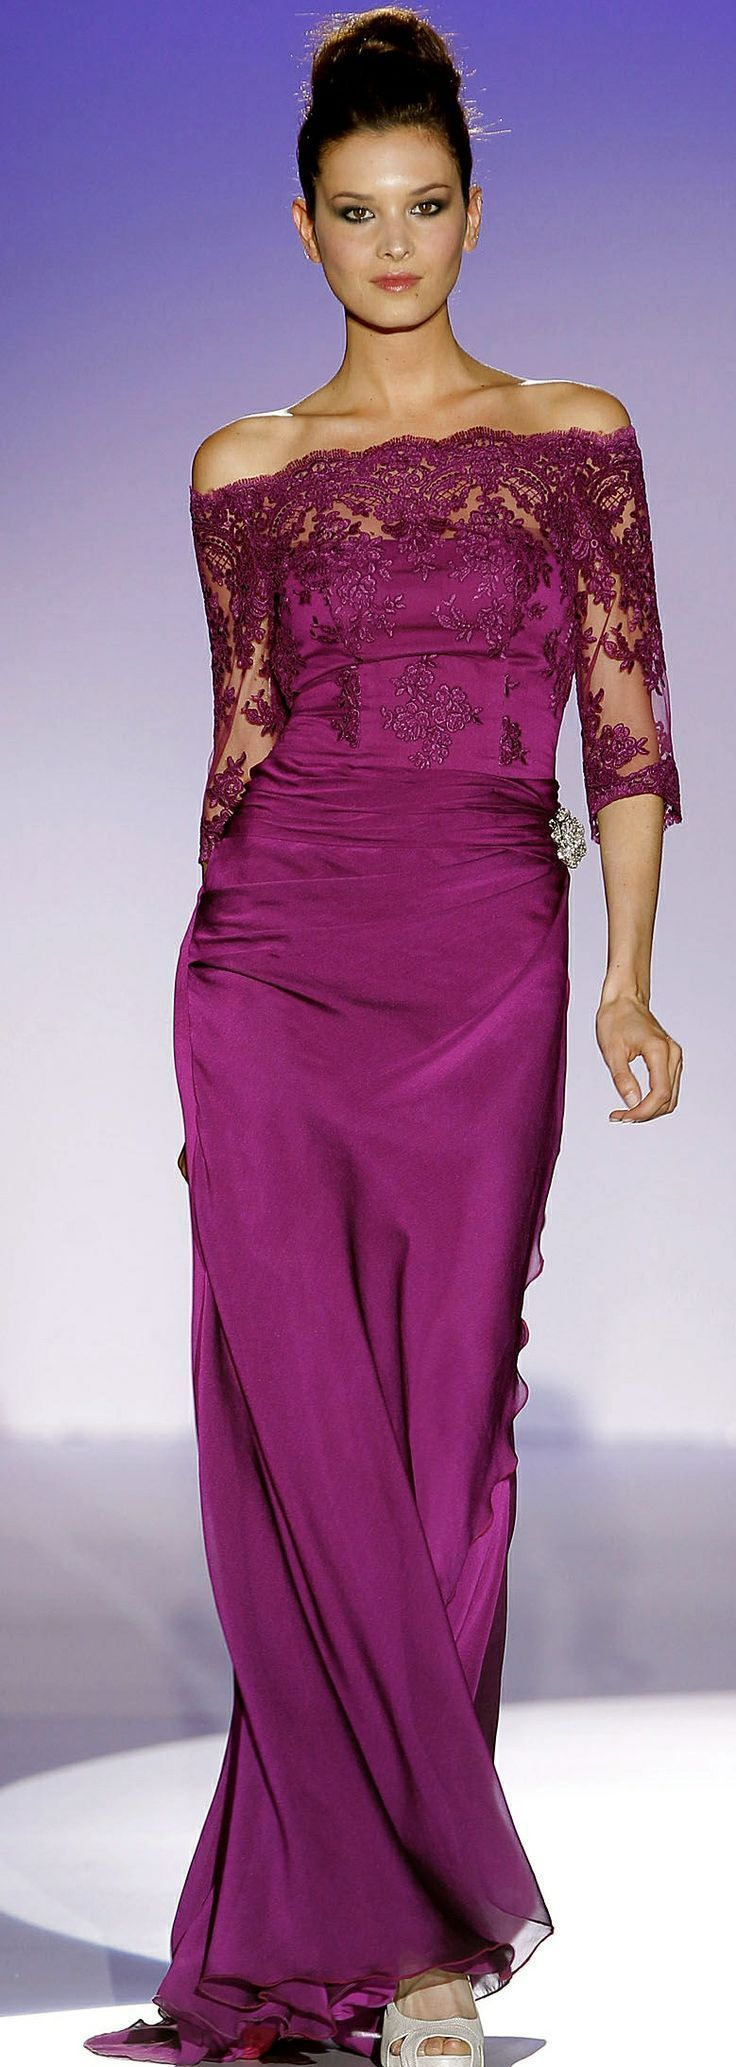 Franc Sarabia magenta gown | Red Carpet\'s style | Pinterest ...